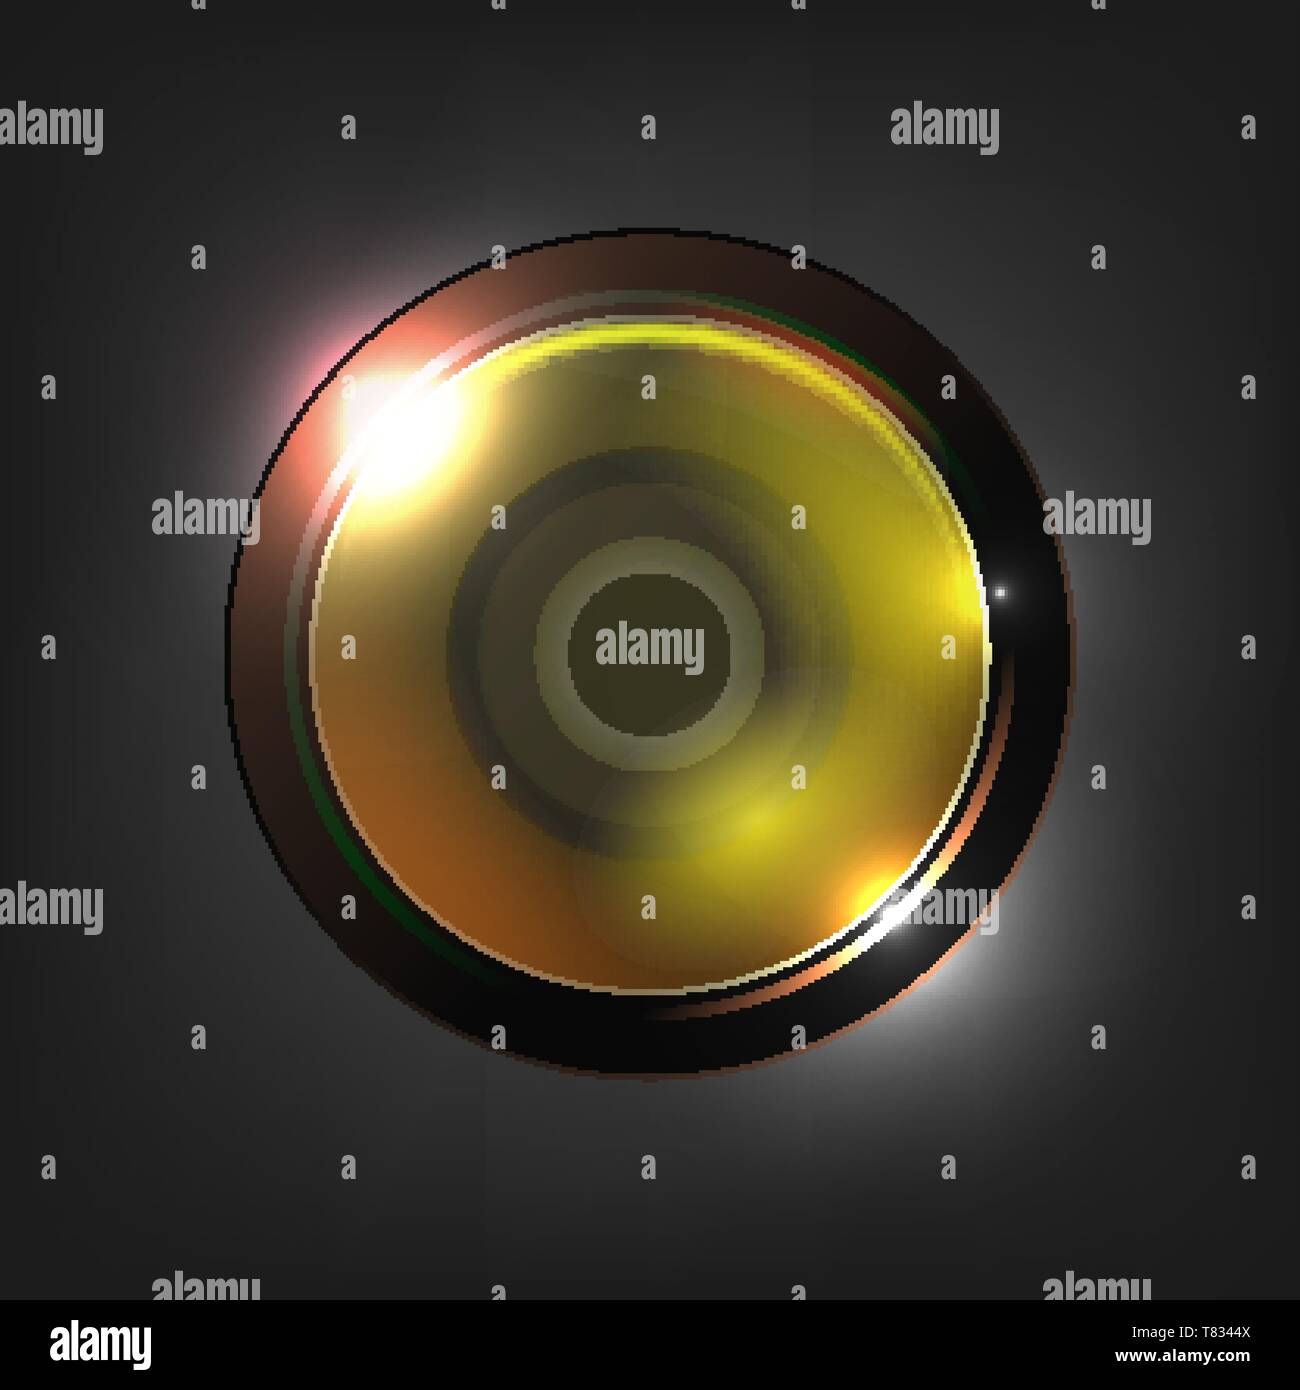 Realistic High Quality Camera Photo Lens Vector. Photographic Lens Used In Mechanism To Make Images Of Objects On Media Capable Of Storing Image Chemi - Stock Image